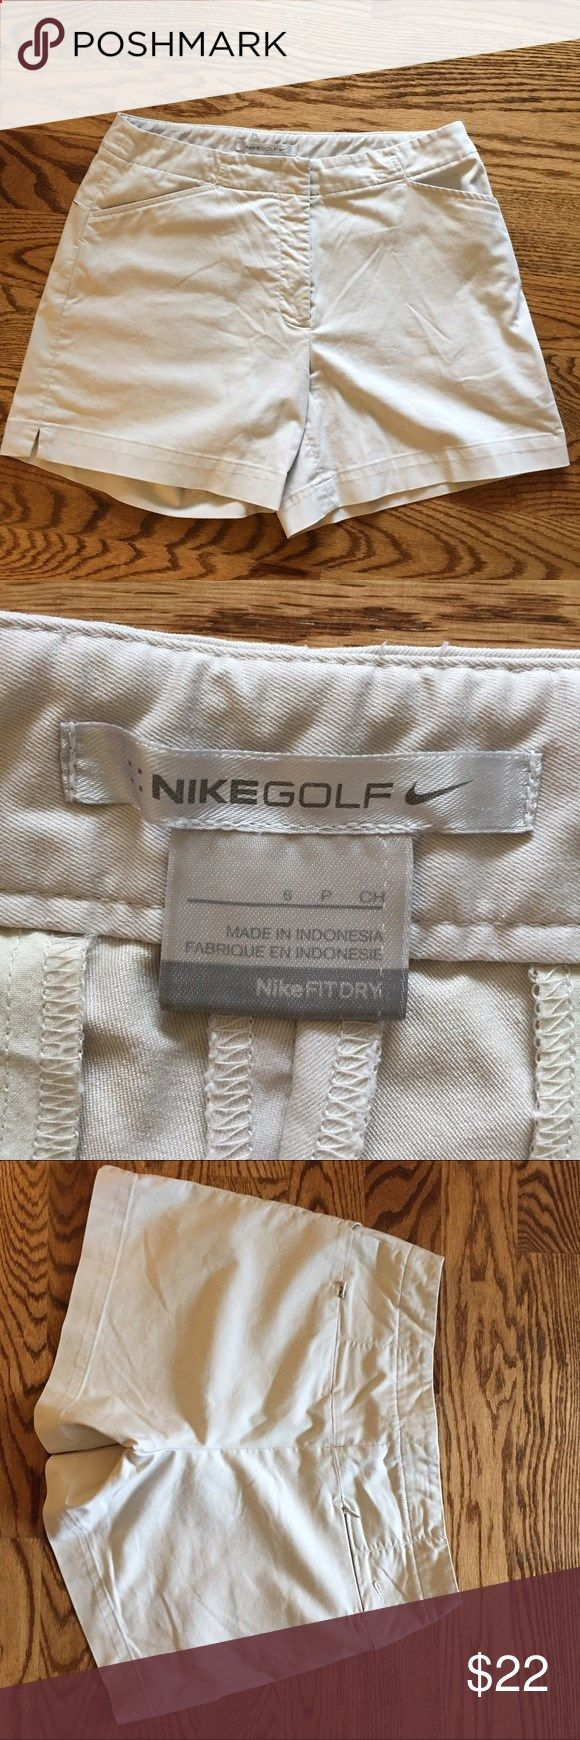 Nike fit dry golf shorts Womens Nike fit dry Golf shorts, size 6, 51% cotton 45% polyester 4% spandex, has a small tear in stitching which can be an easy fix. Nike Shorts